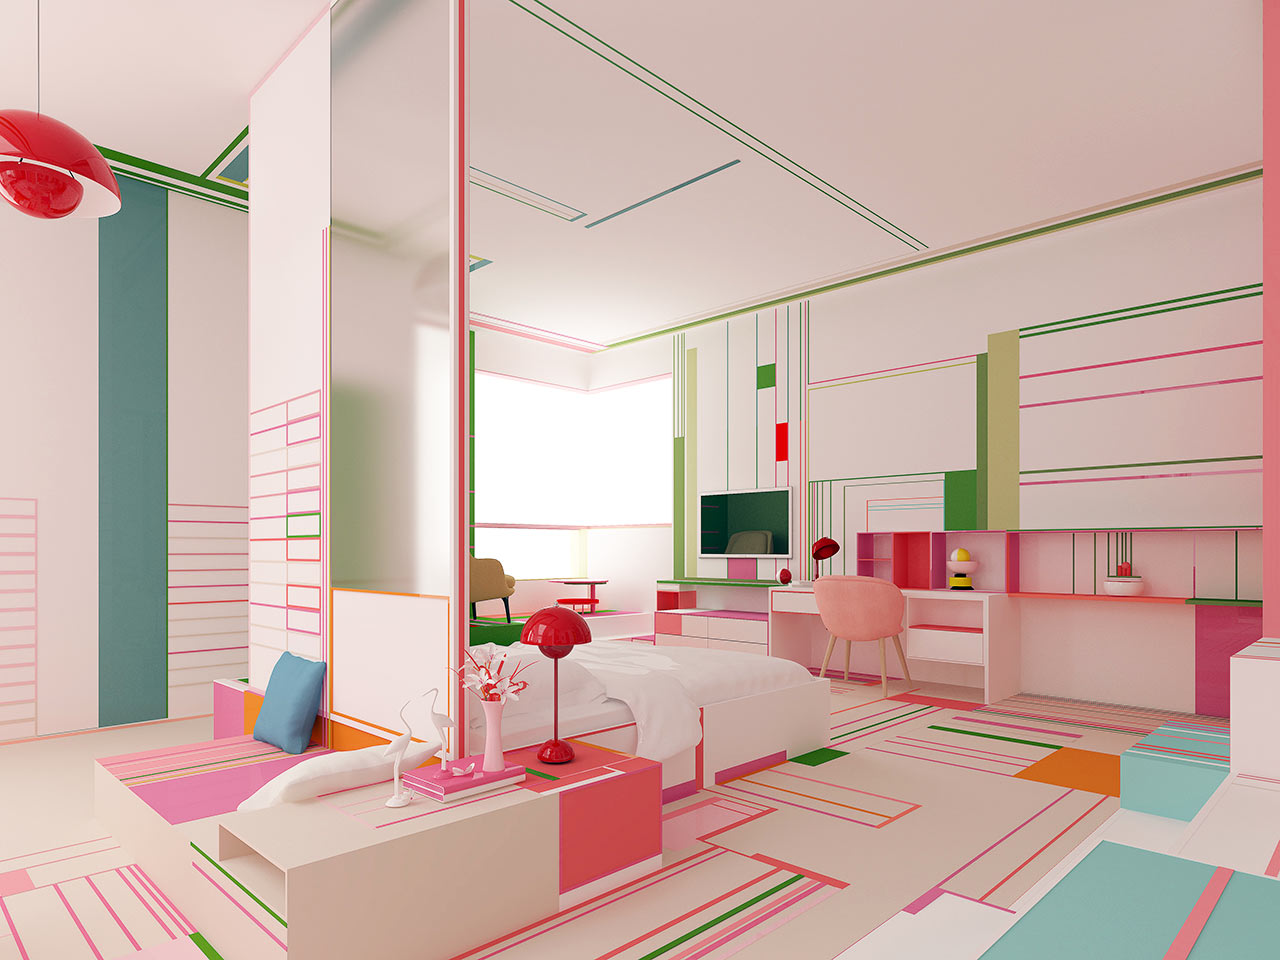 Brani & Desi's Pink Lake Breath Explores Color and Geometry